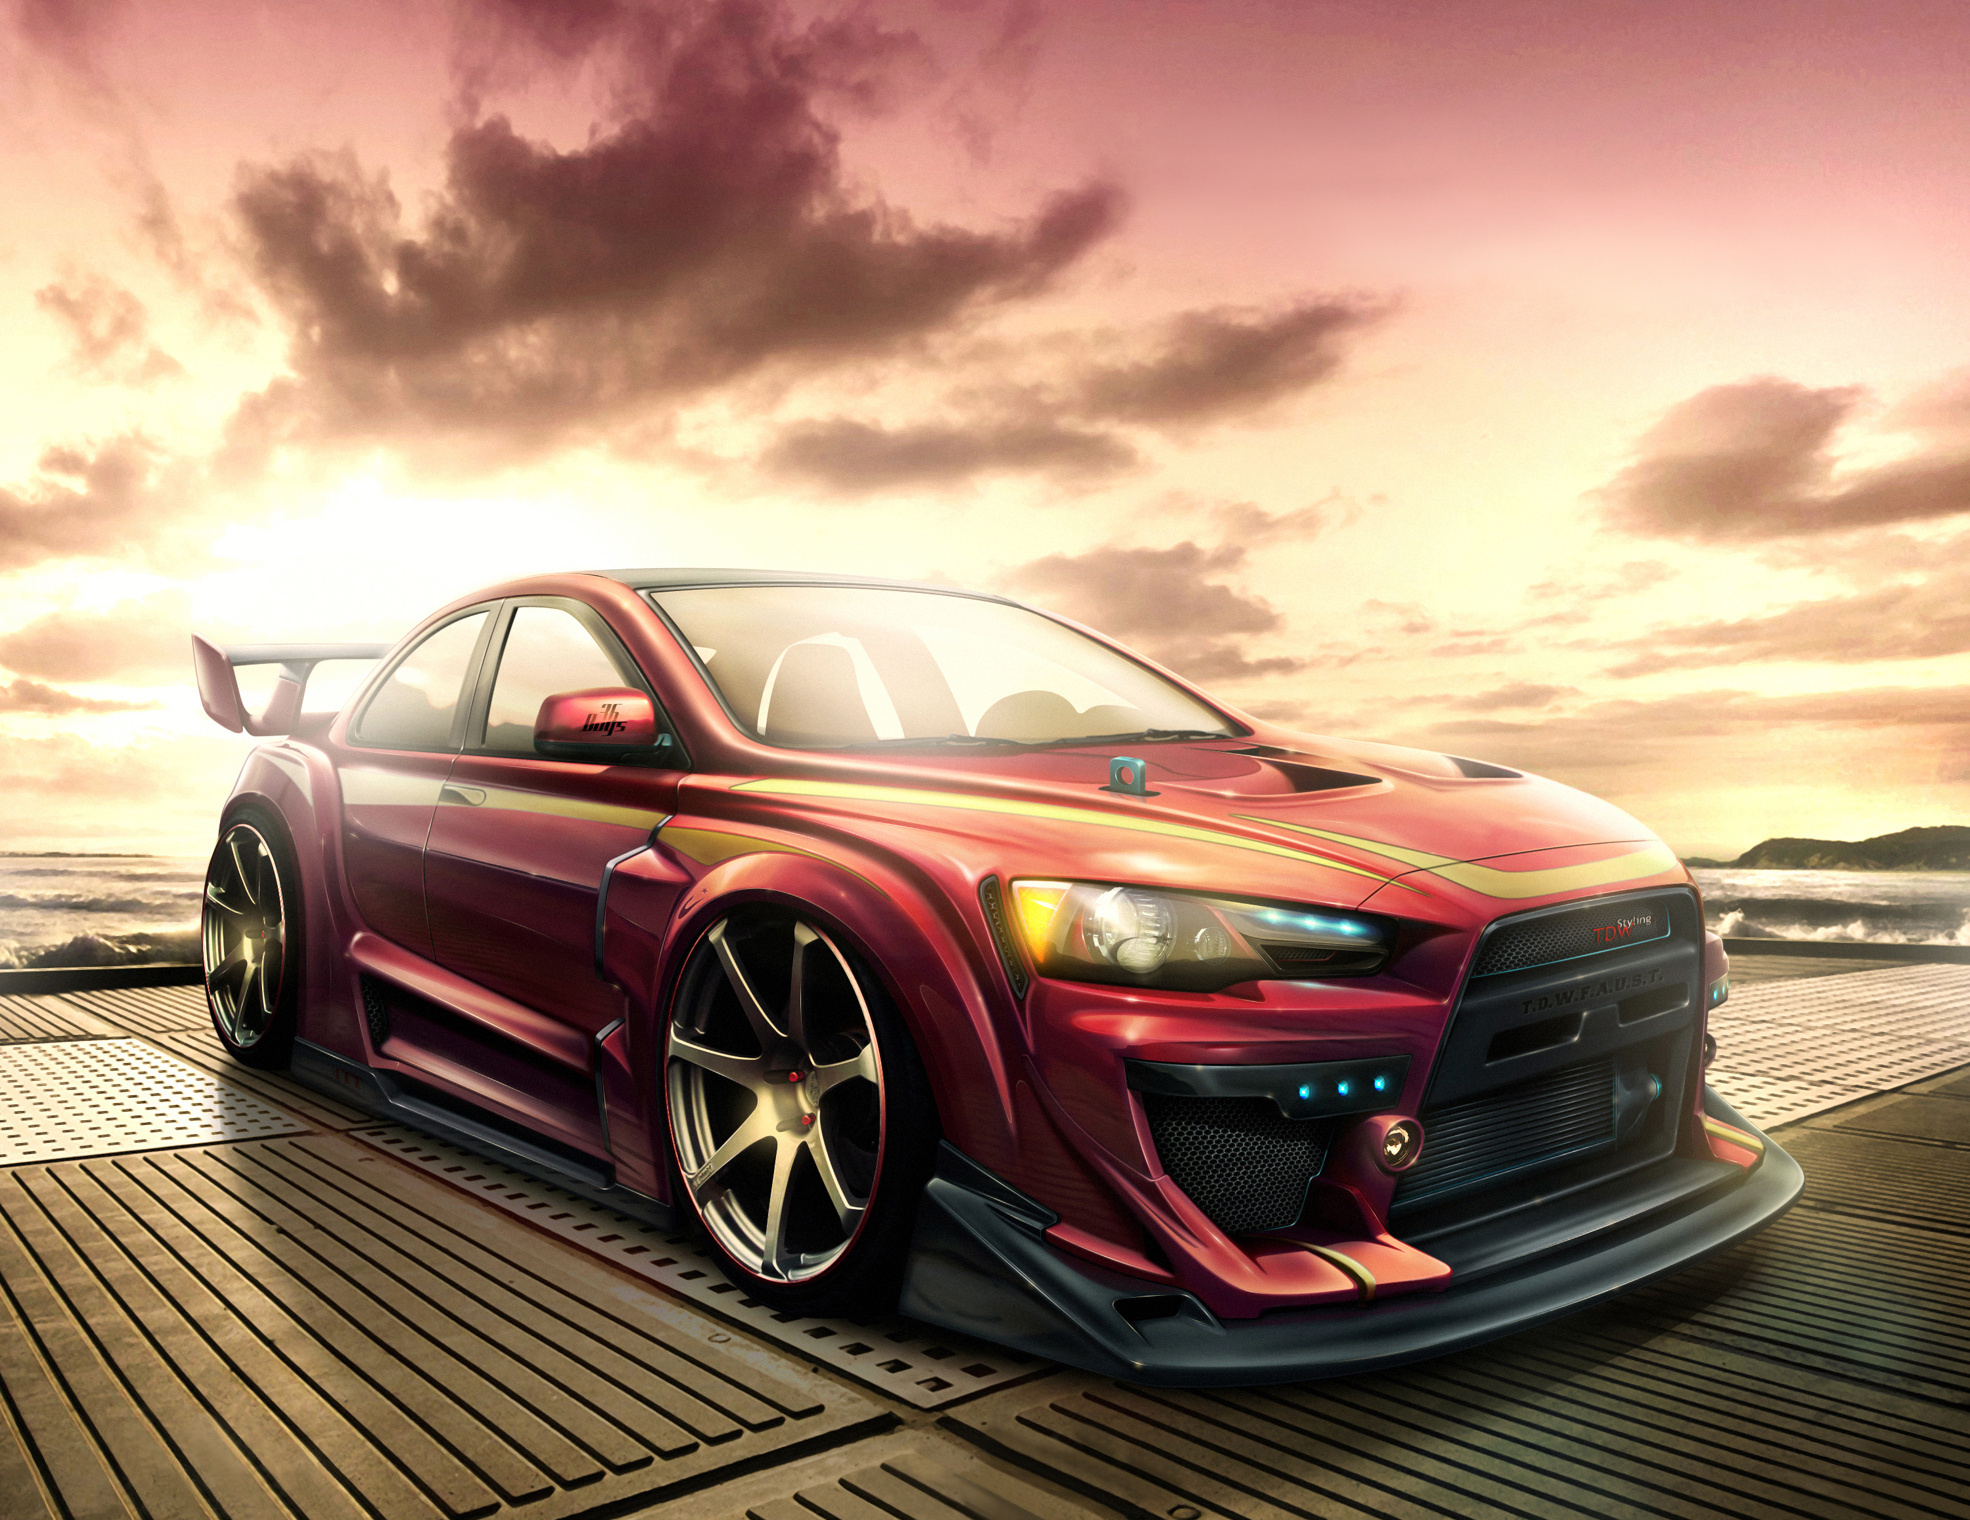 Mitsubishi Evo Wallpaper Wallpapersafari